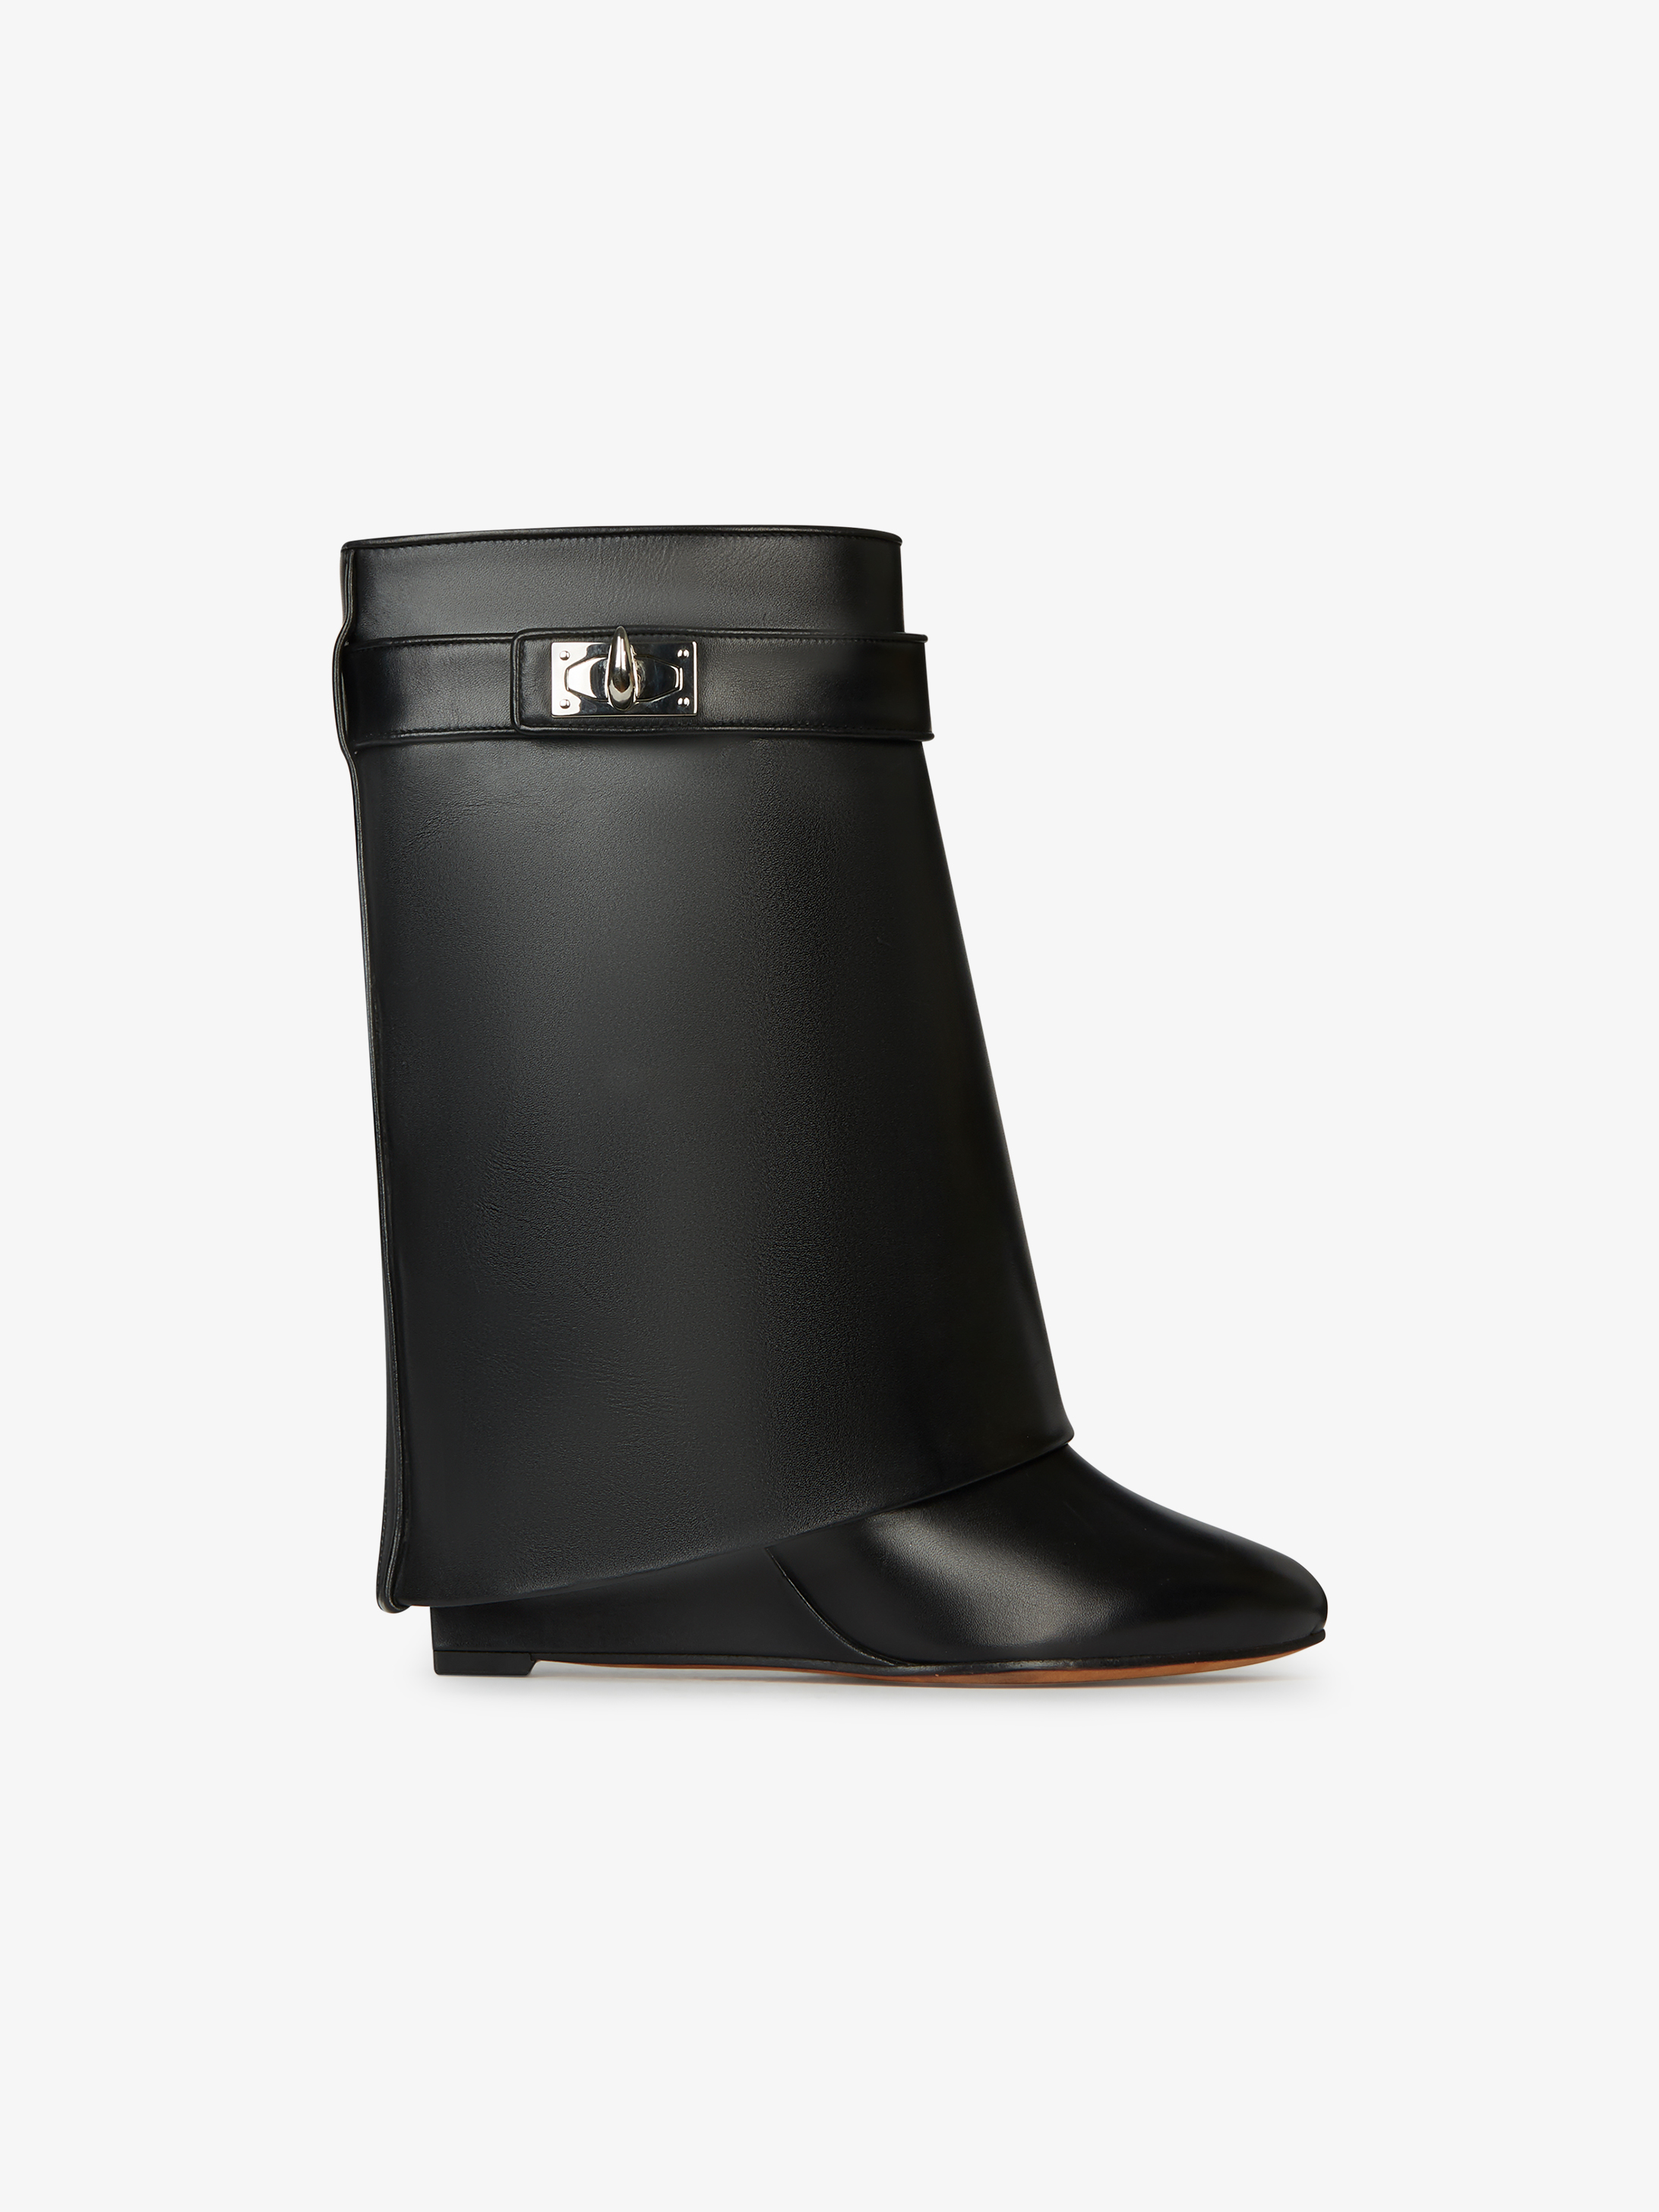 Givenchy Shark Lock Ankle Boots Givenchy Paris